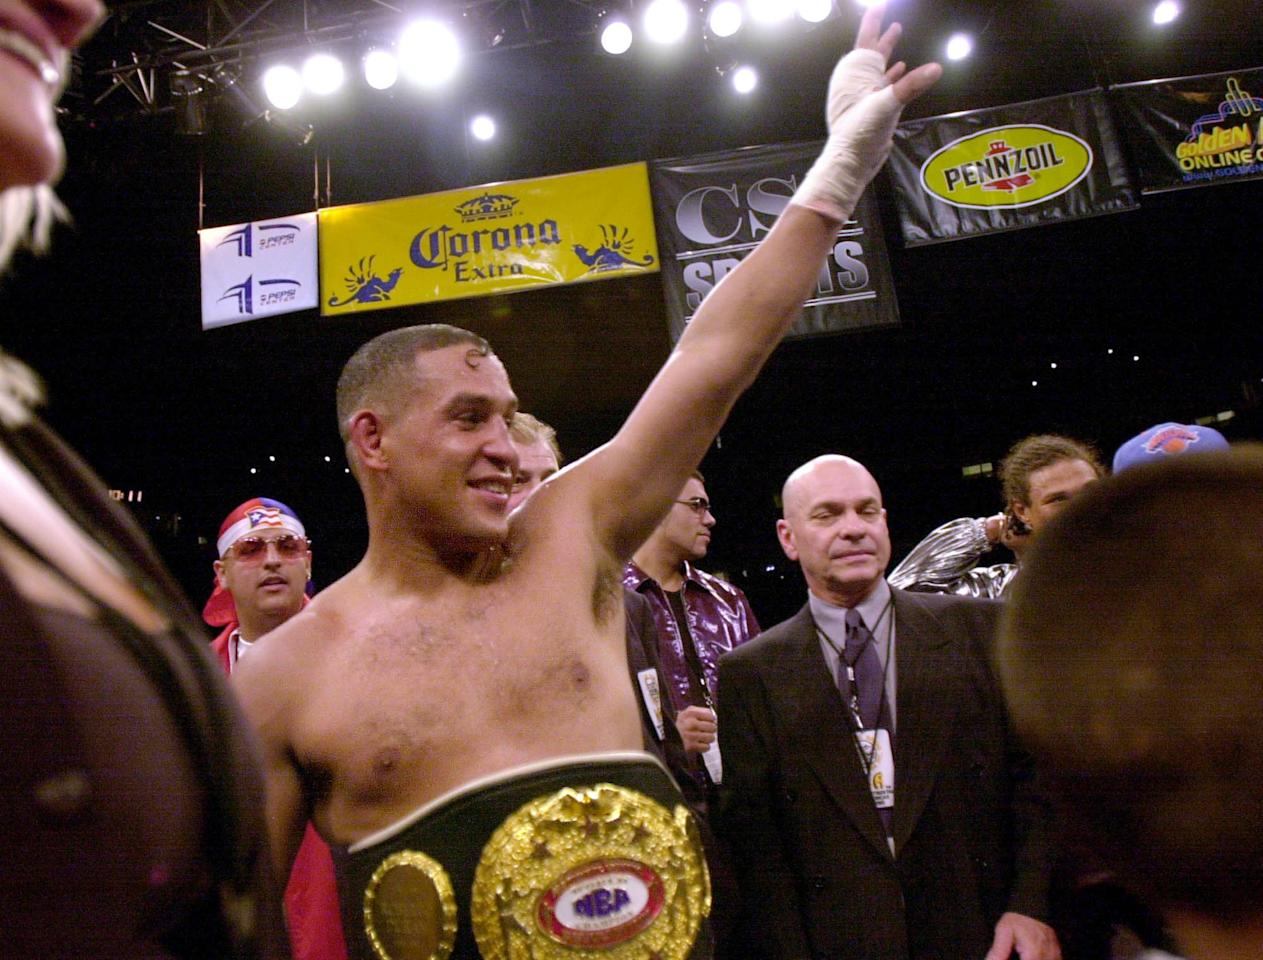 """(FILES)Hector Camacho from Puerto Rico waves to the crowd, wearing the NBA Super Middle Weight Championship belt, after winning over Roberto Duran from Panama by decision in 12 rounds at the Pepsi Center in this July 14, 2001 photo in Denver, Colorado.  Former three time world boxing champion Hector """"Macho"""" Camacho was seriously injured the evening of November 20, 2012 after being shot in the neck in Puerto Rico, local media reported. Camacho, 50, was being driven in a car when he was hit in the head by gunshot from another vehicle around 7:00 pm local time, the Primera Hora de Puerto Rico newspaper reported on its website. Ernesto Torres, director of the Centro Medico de Rio Piedras, was cautious about Camacho's chances of survival, saying that a bullet had fractured two bones in his neck. """"It appears the bullet struck a bone and was deflected without going into the brain,"""" Torres told the newspaper. An earlier report said a single bullet struck the left side of Camacho's jaw.  AFP PHOTO MARK LEFFINGWELLMARK LEFFINGWELL/AFP/Getty Images"""